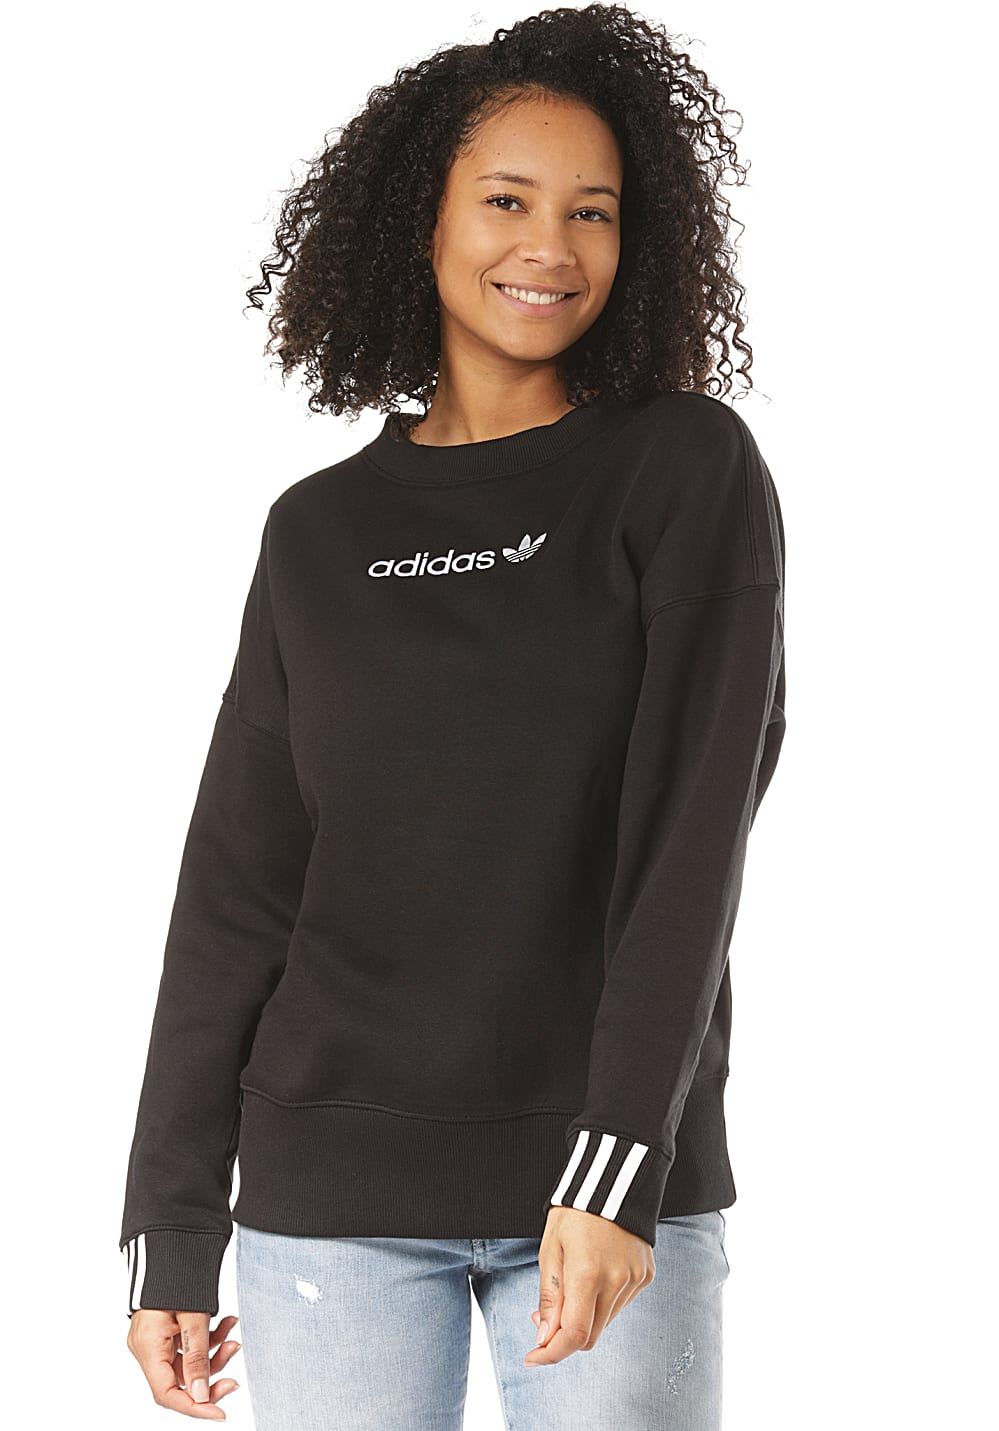 ba68348cfe6 adidas Originals Coeeze - Sweatshirt für Damen - Schwarz - Planet Sports